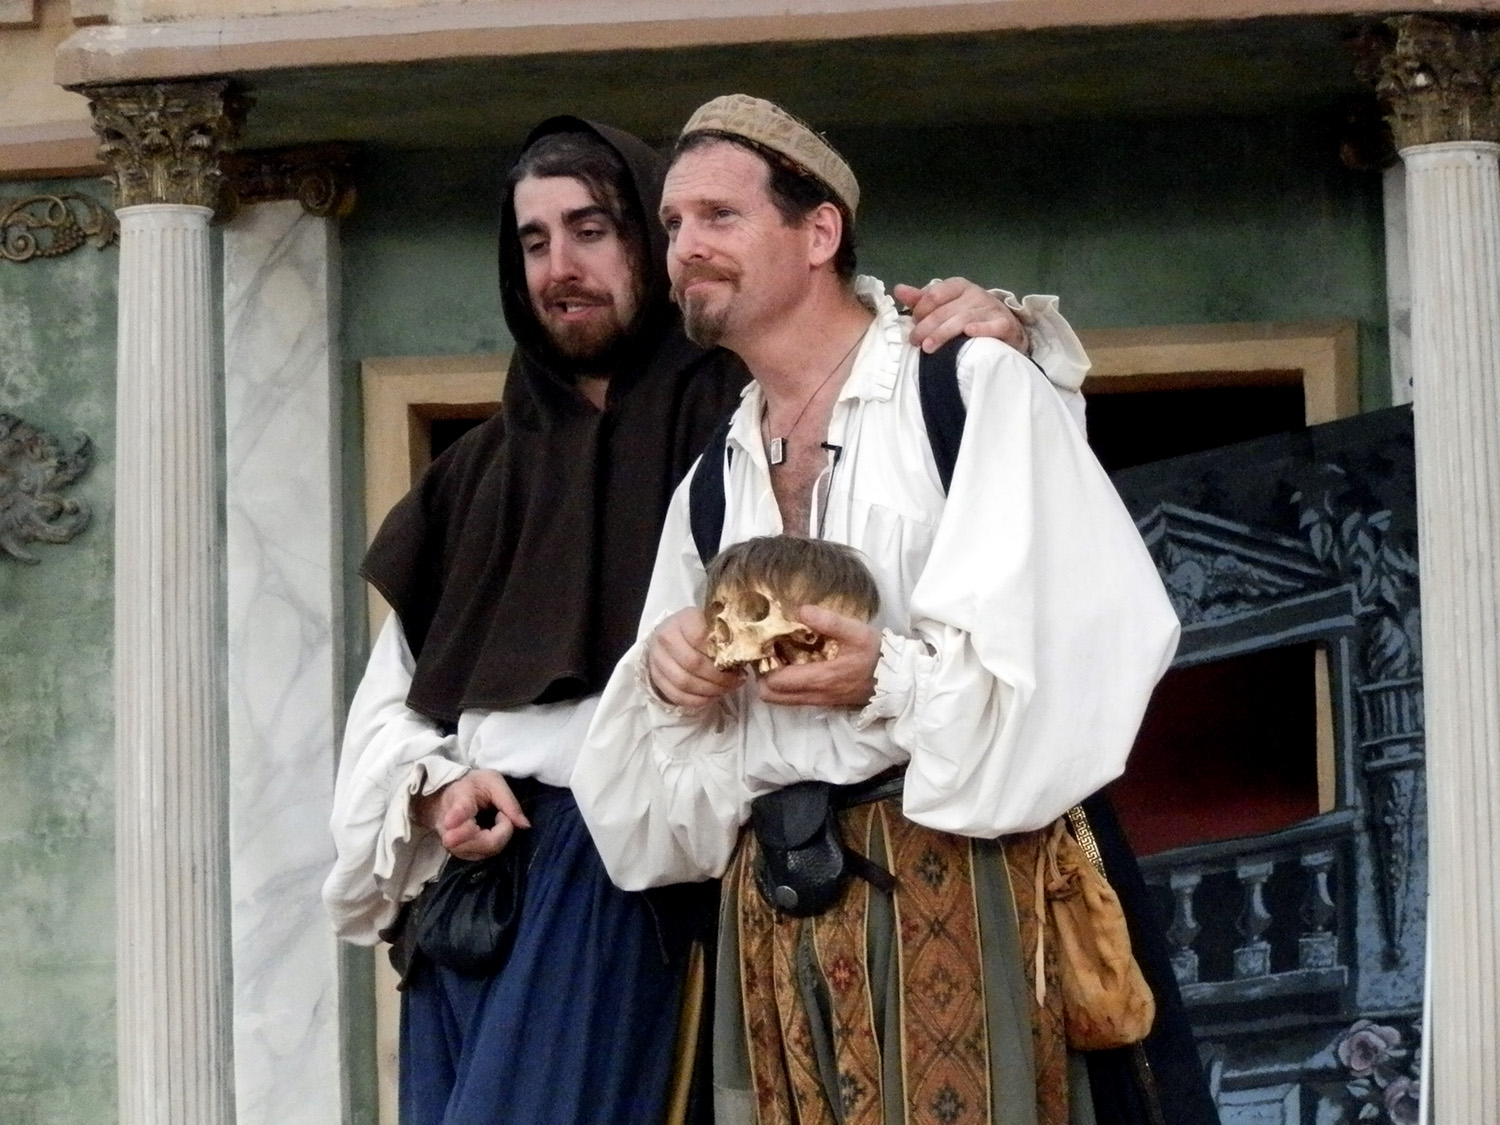 Entertainment: Sound and Fury comedy parody Shakespeare